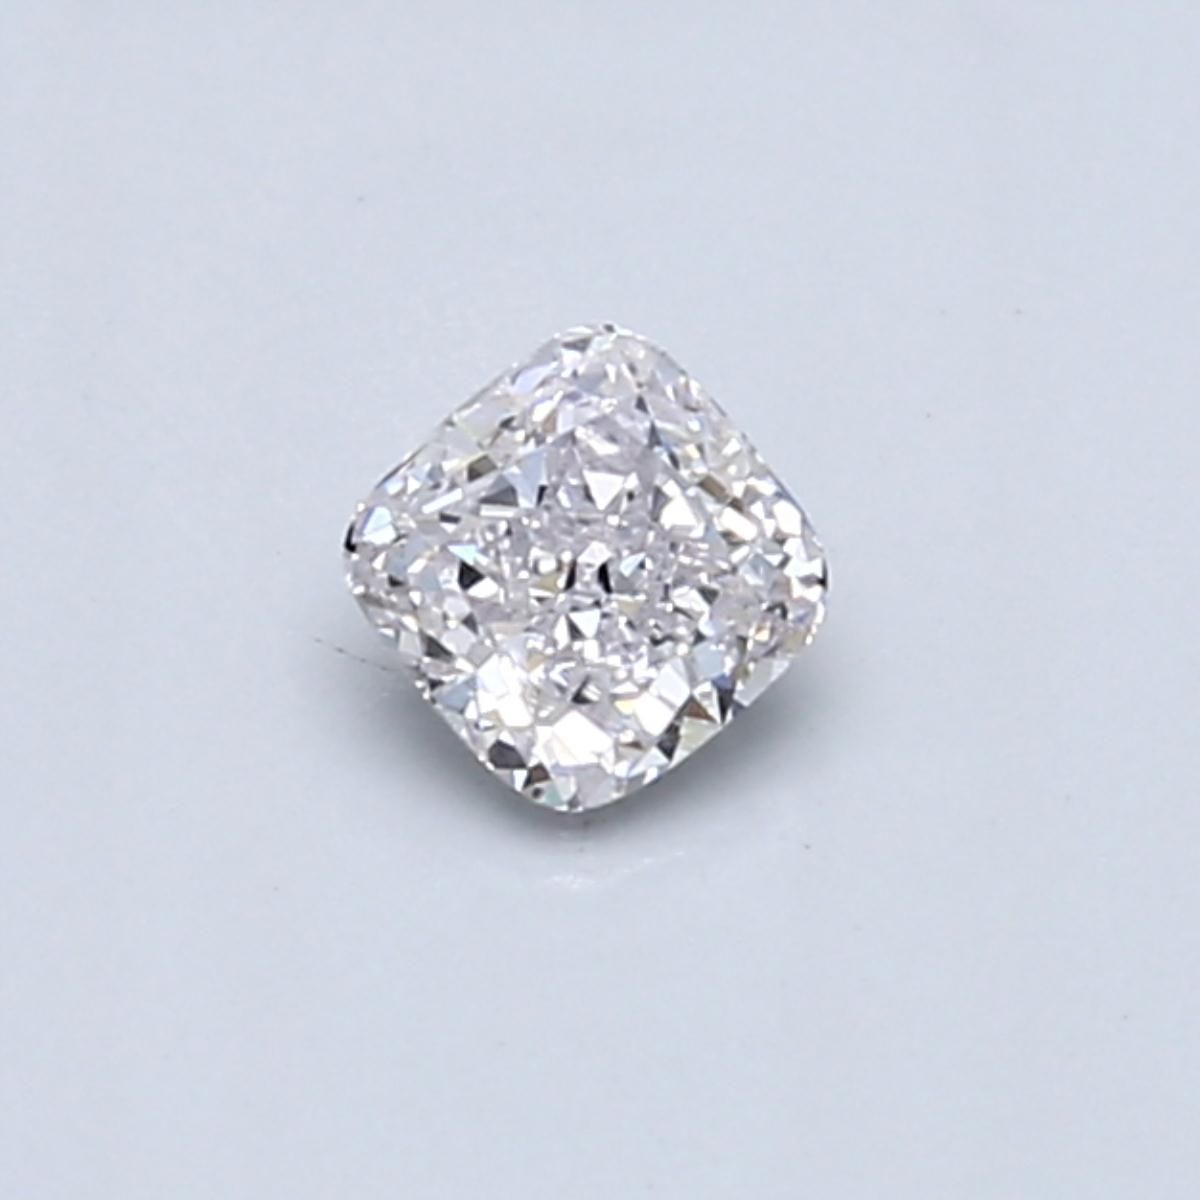 have of diamond us pembroke jewellery certified we by them shore gold to appraiser south jewelry other assess diamonds your bring buy carefully evaluated each will a pieces who or